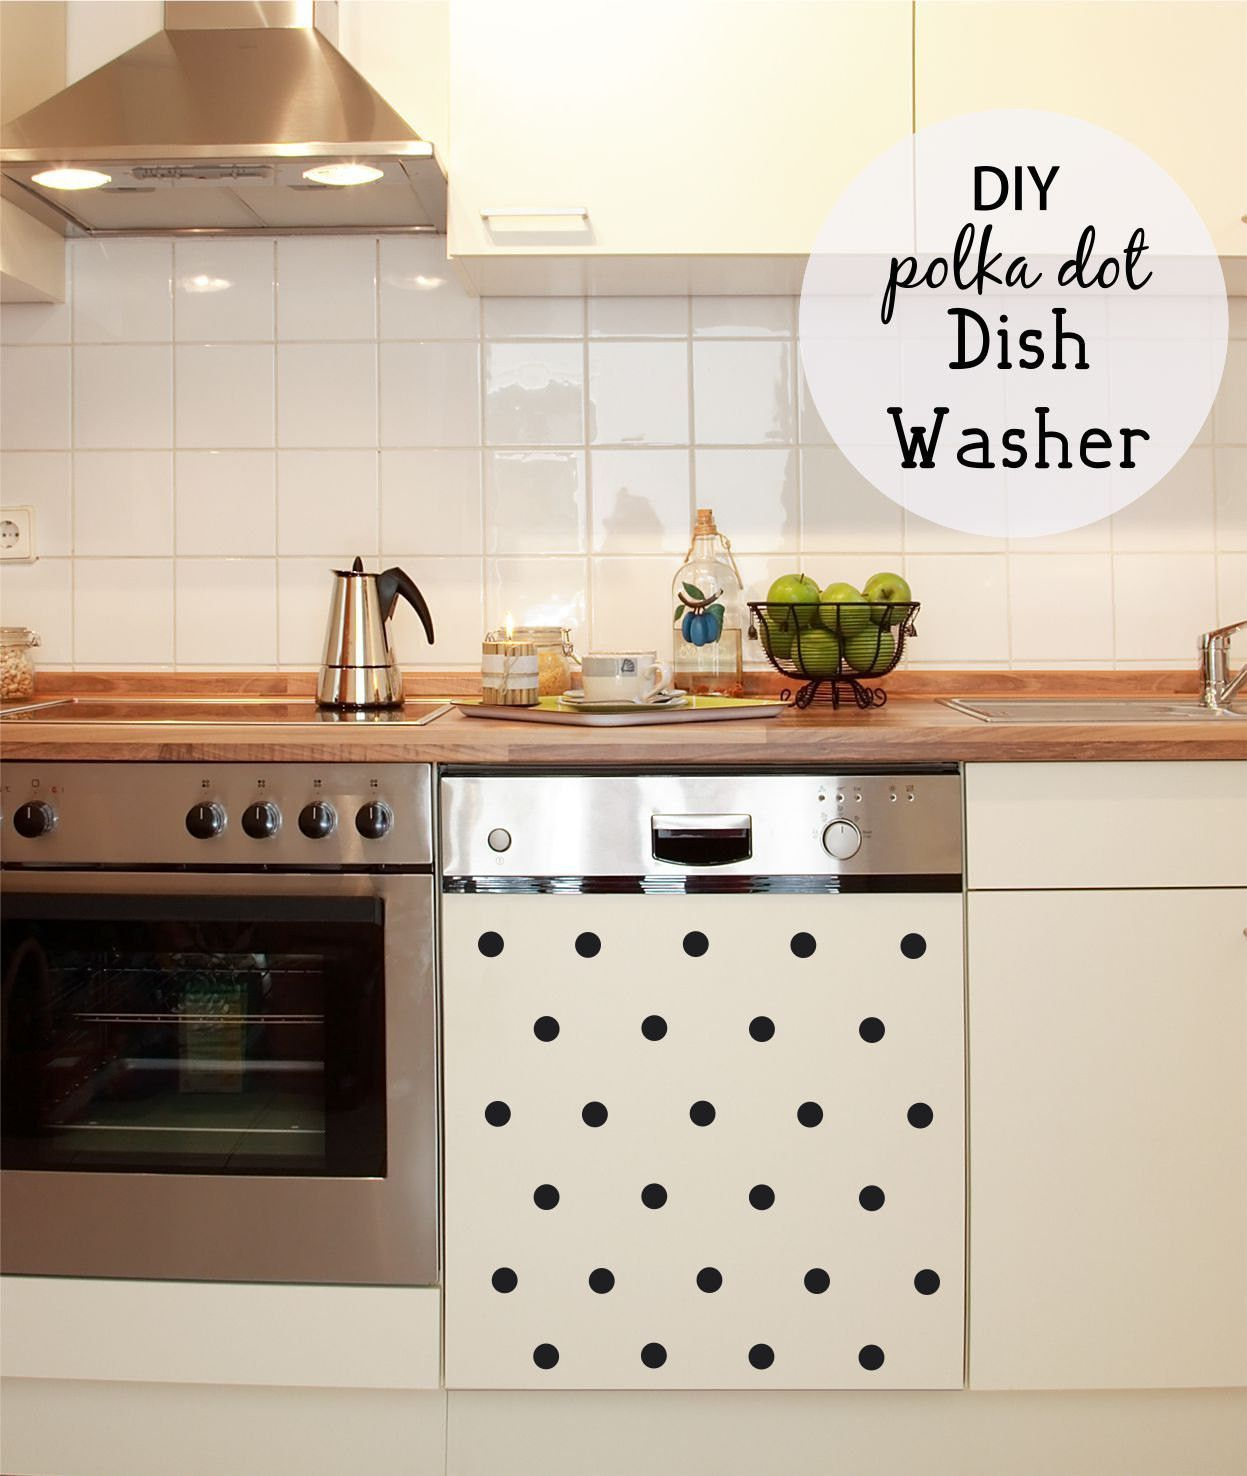 Kitchen Decals - Polka Dot Decals - Kitchen Wall Decals - Dishwasher ...